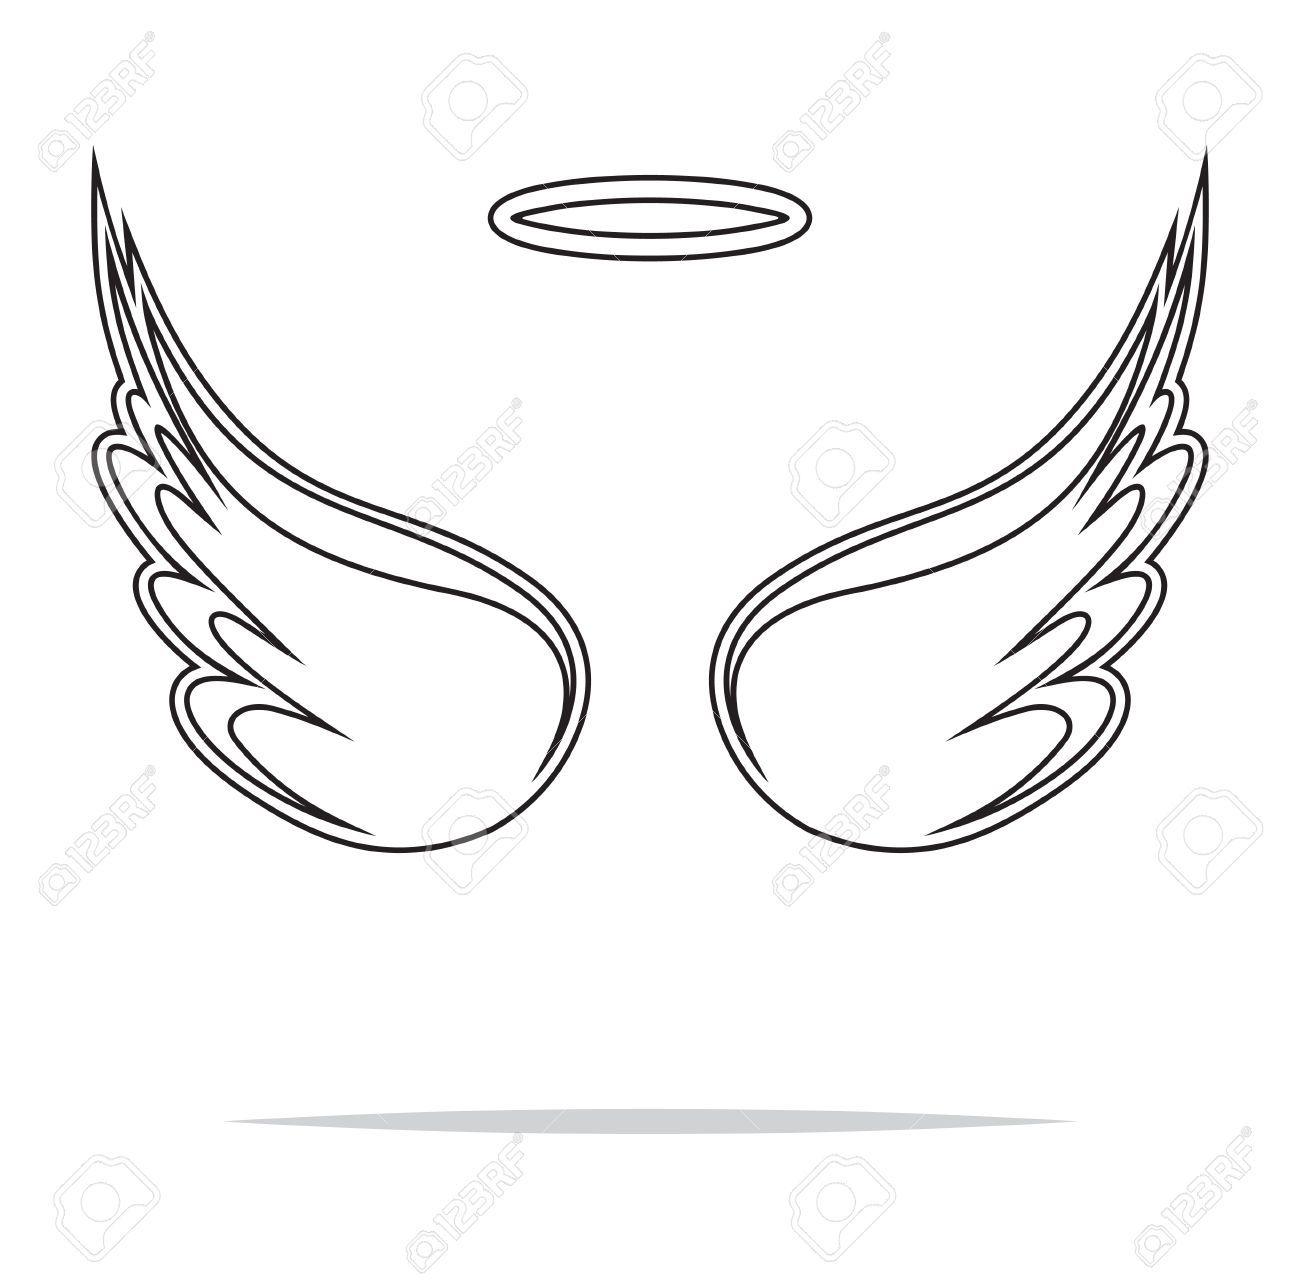 25+ Angel wing clipart free info